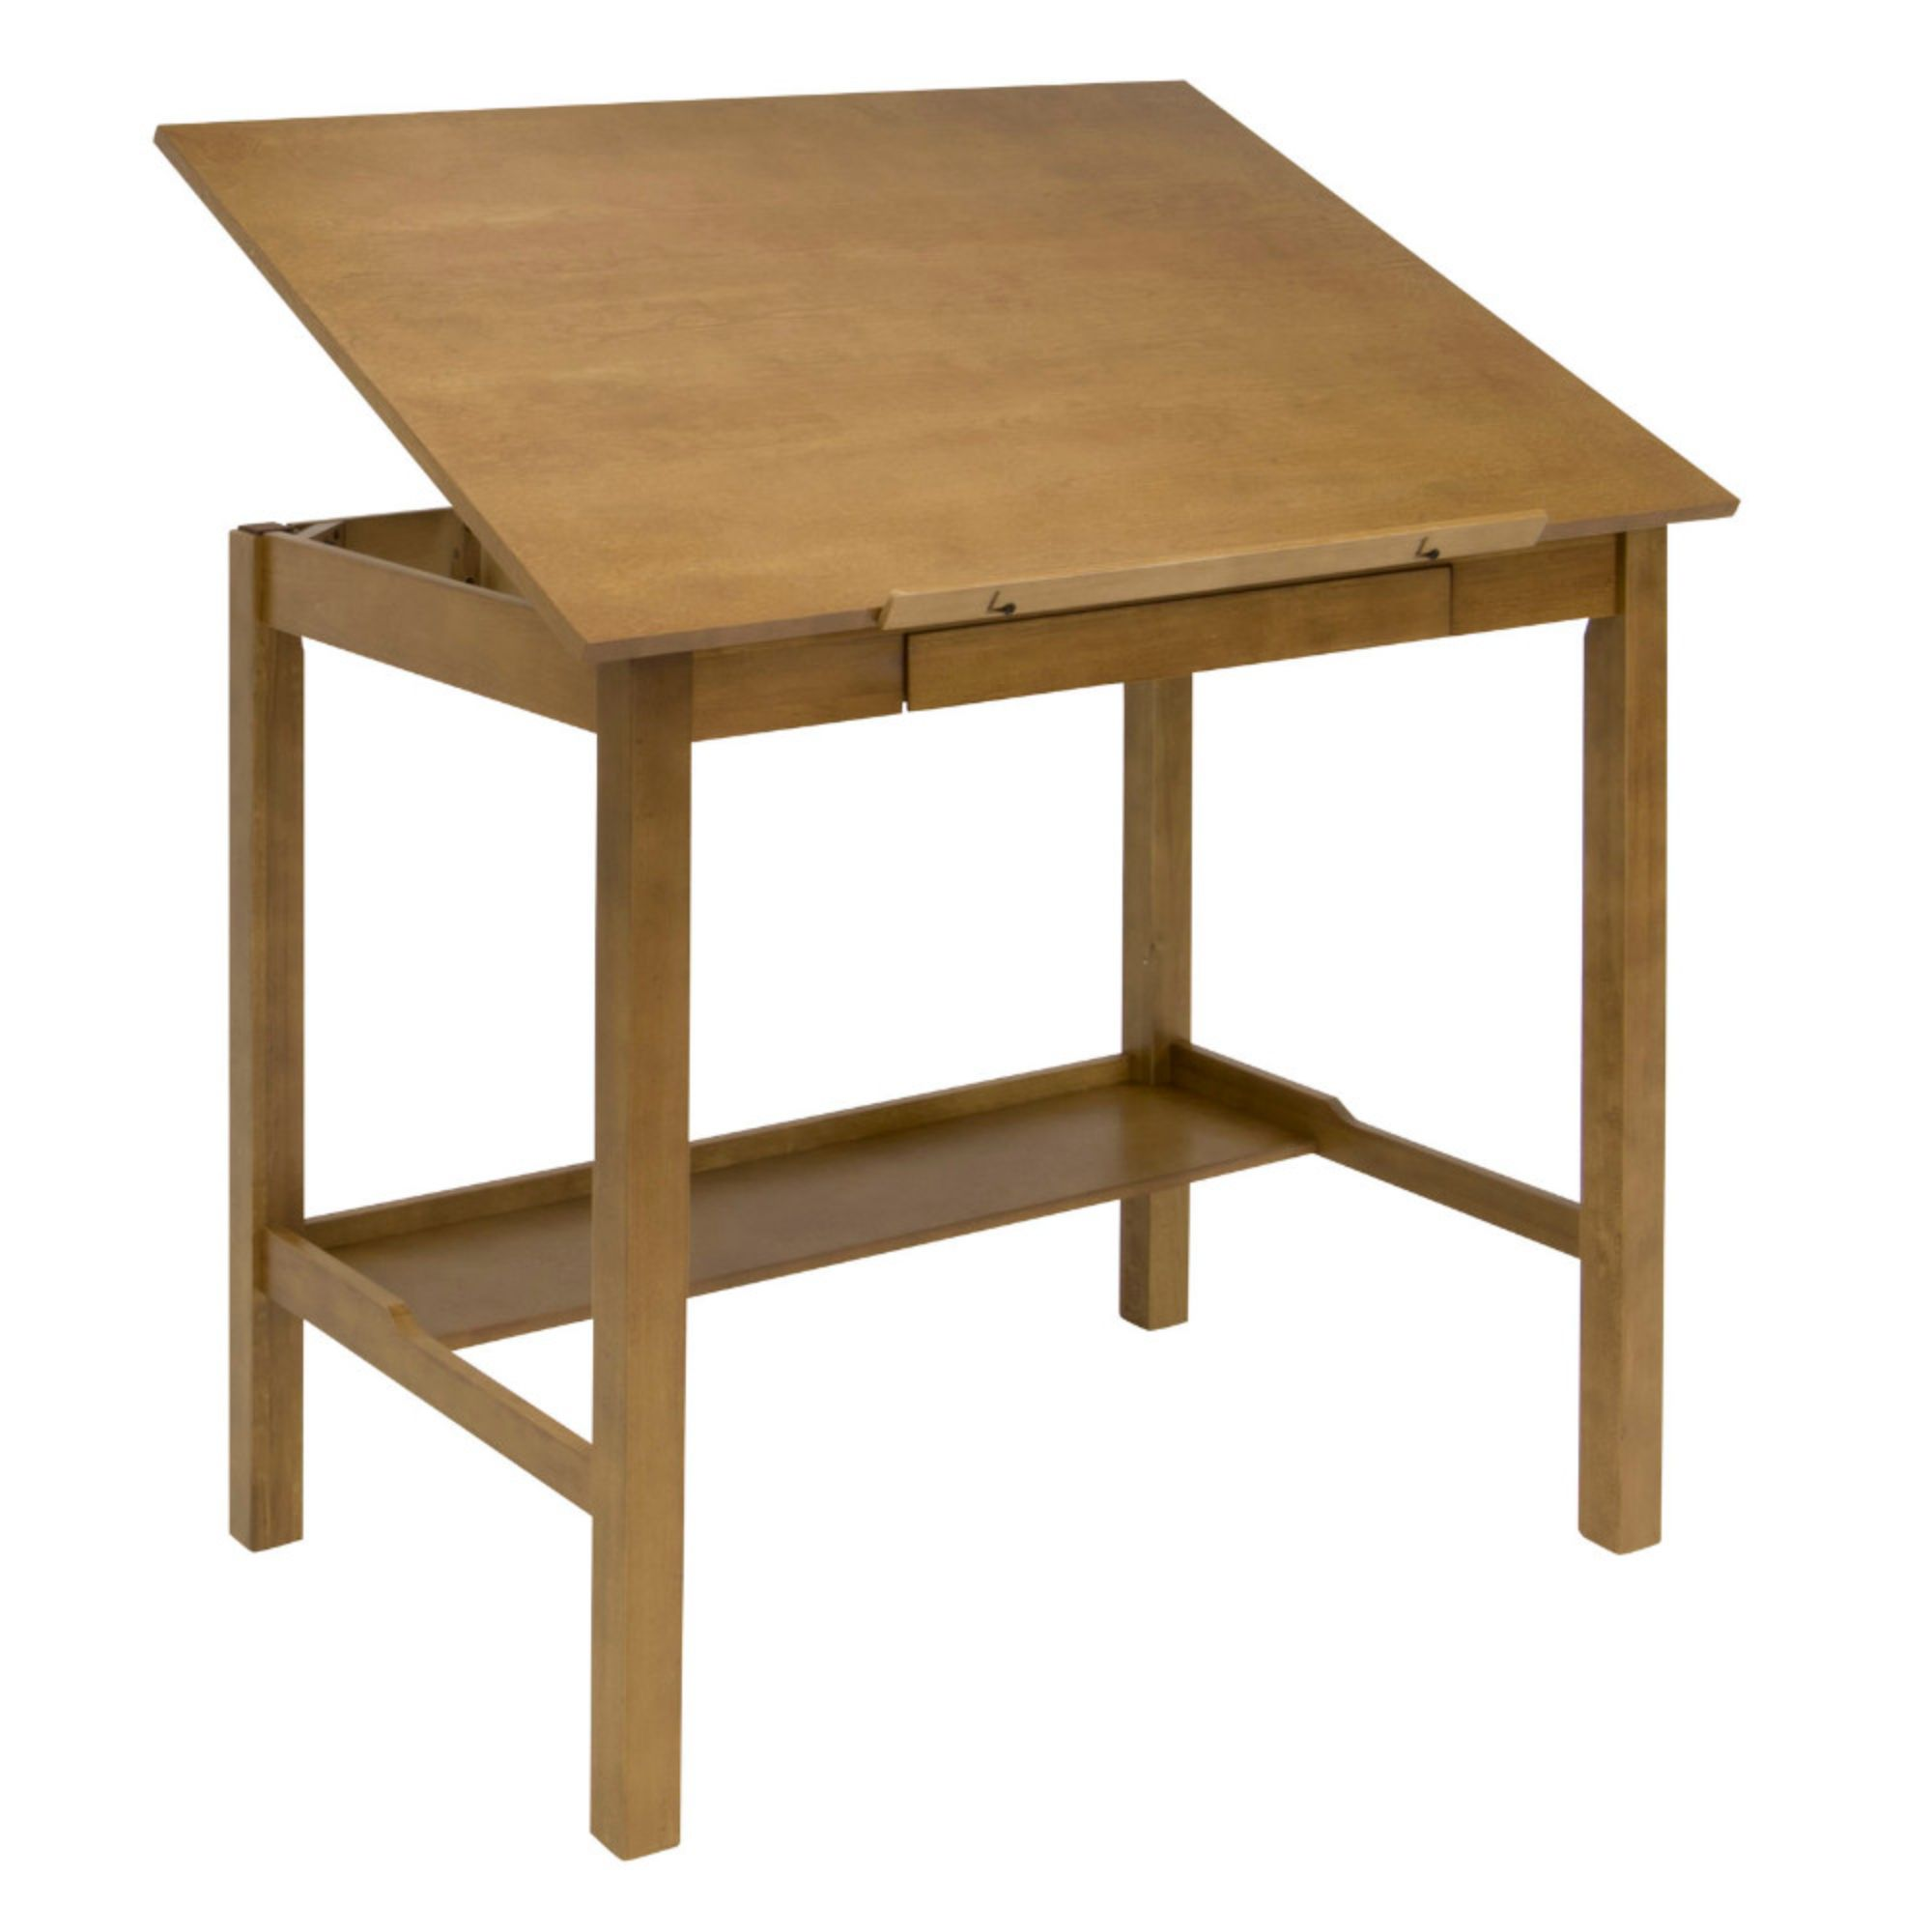 Wonderful image of  Supplies > See more Studio Designs Americana II Drafting Table 30i with #6B4827 color and 1500x1500 pixels